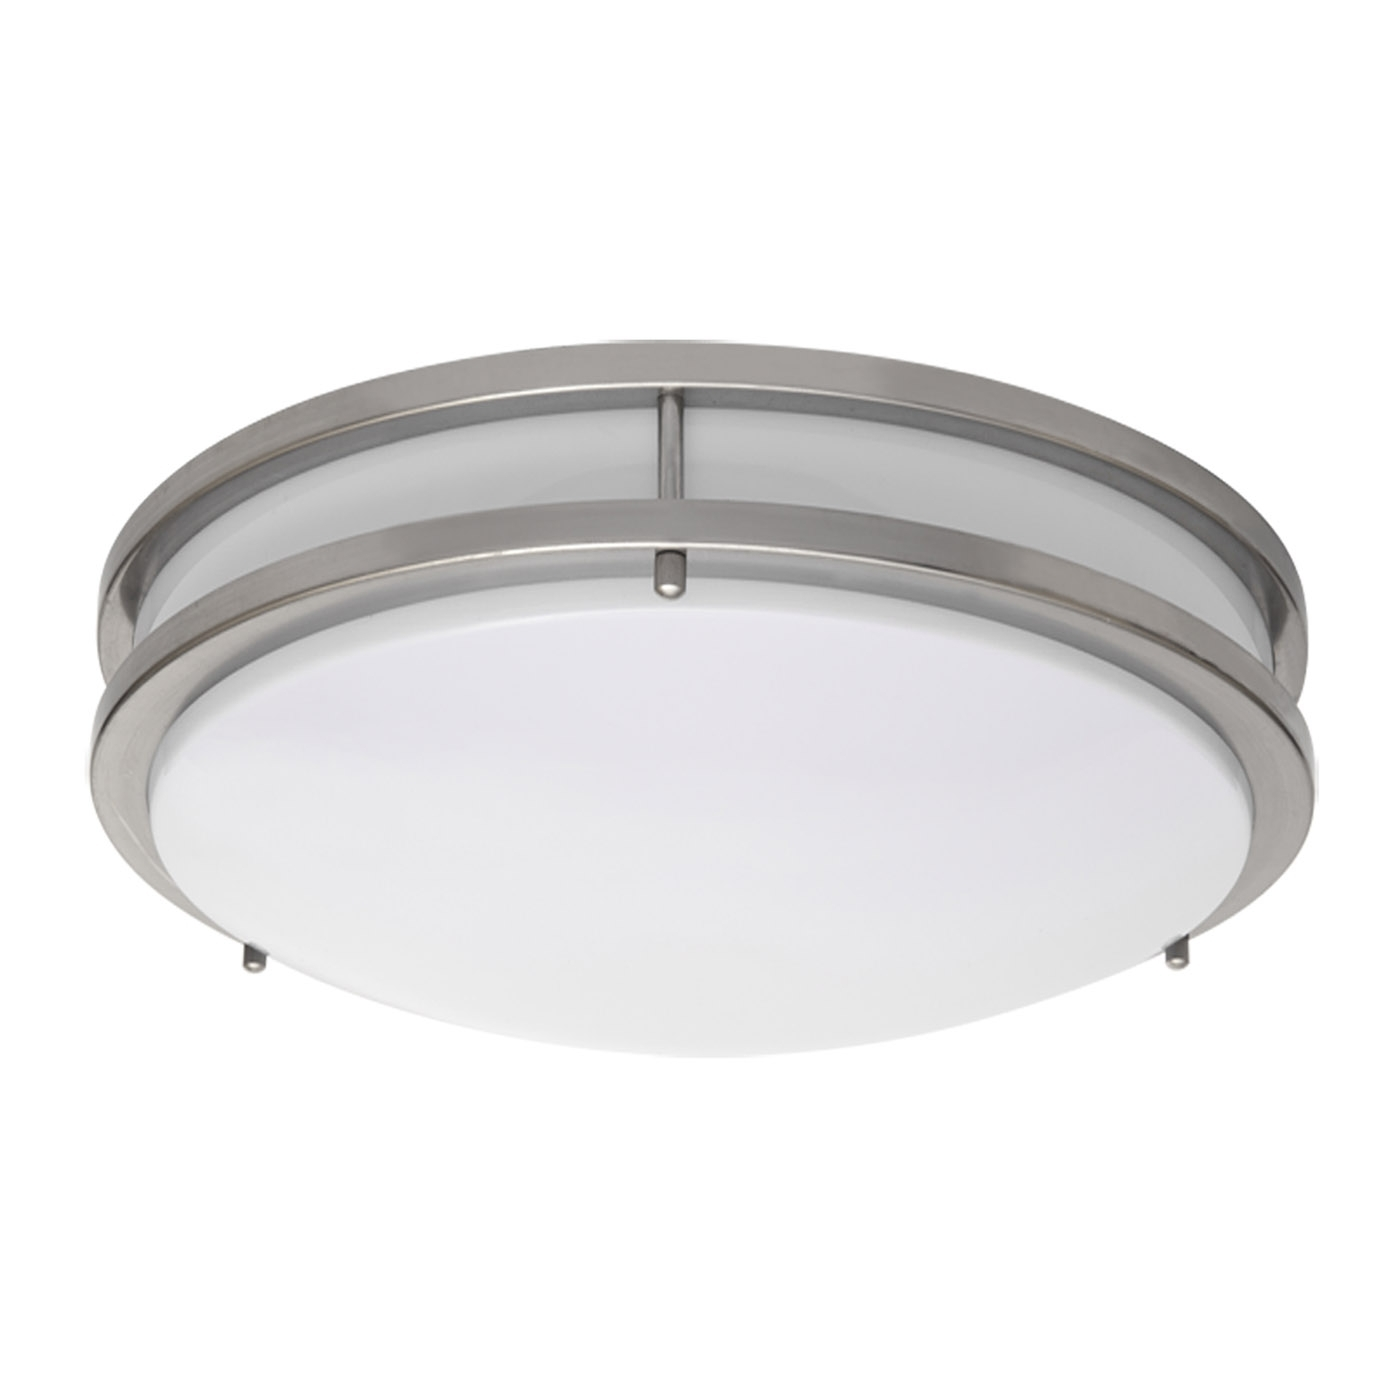 Outdoor Ceiling Mount Led Lights Pertaining To Most Popular Light : Led Ceiling Light Fixture Amax Lighting Fixtures Two Ring (View 13 of 20)